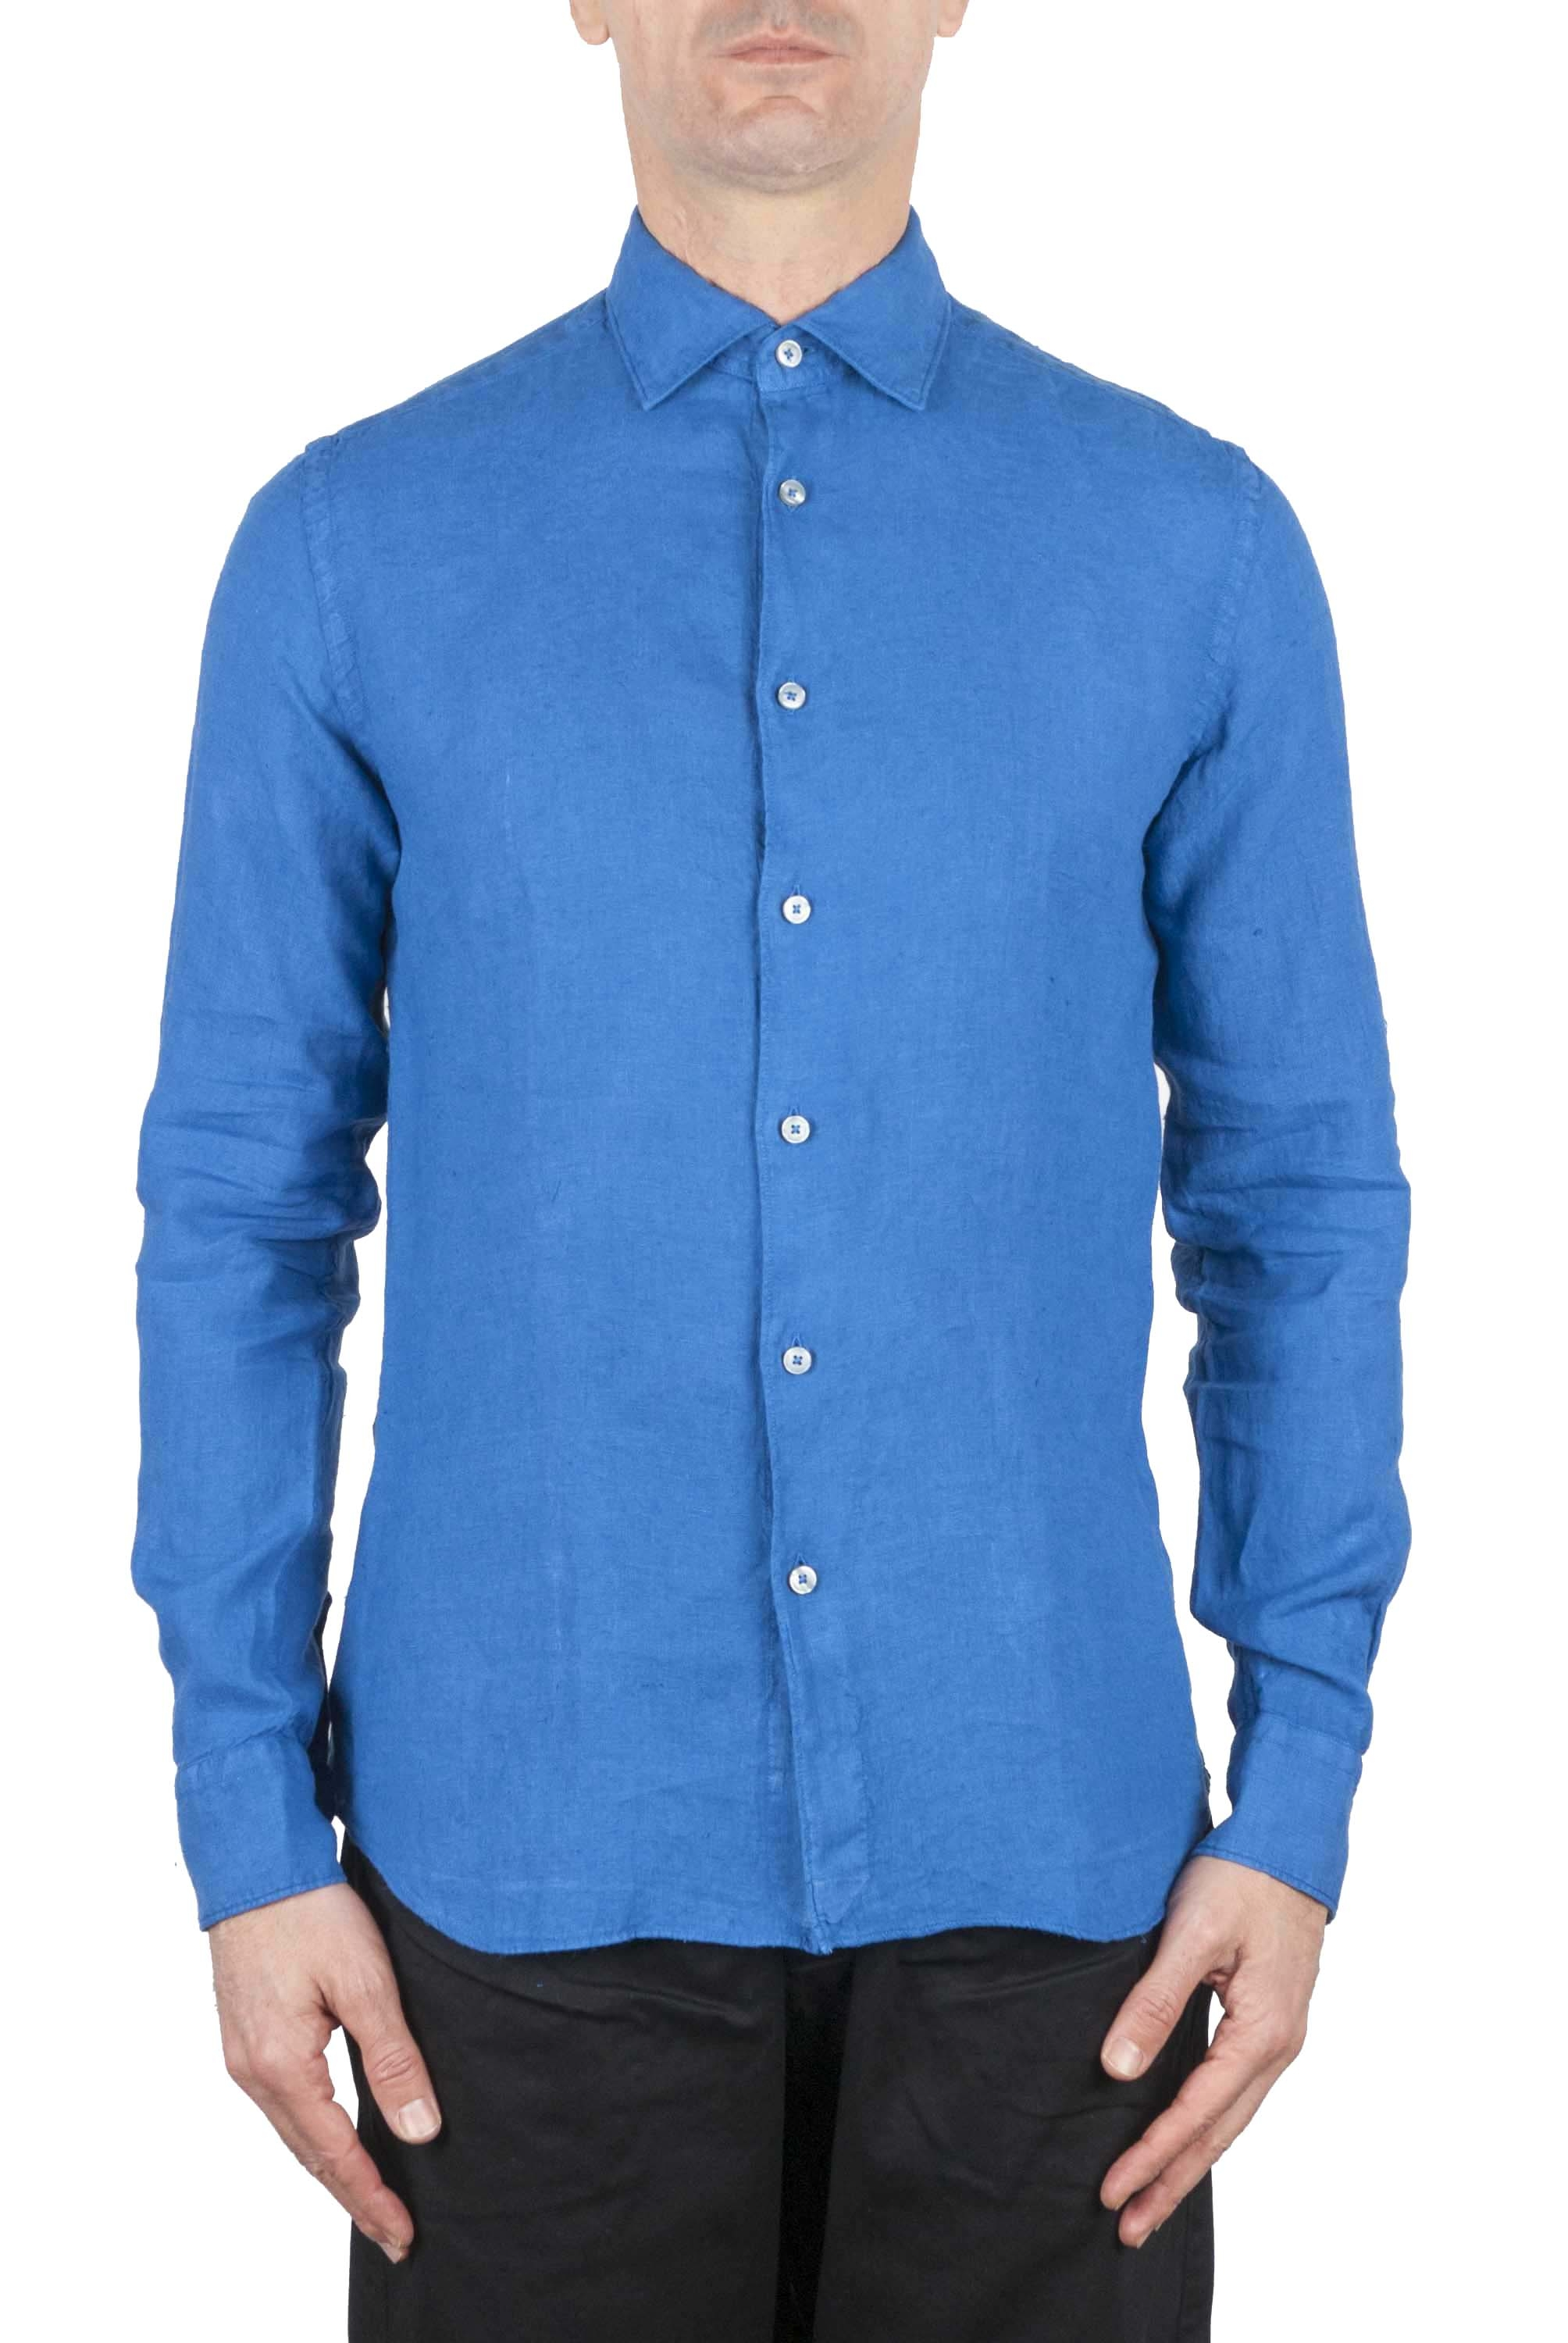 SBU 01083 Slim fit linen shirt 01